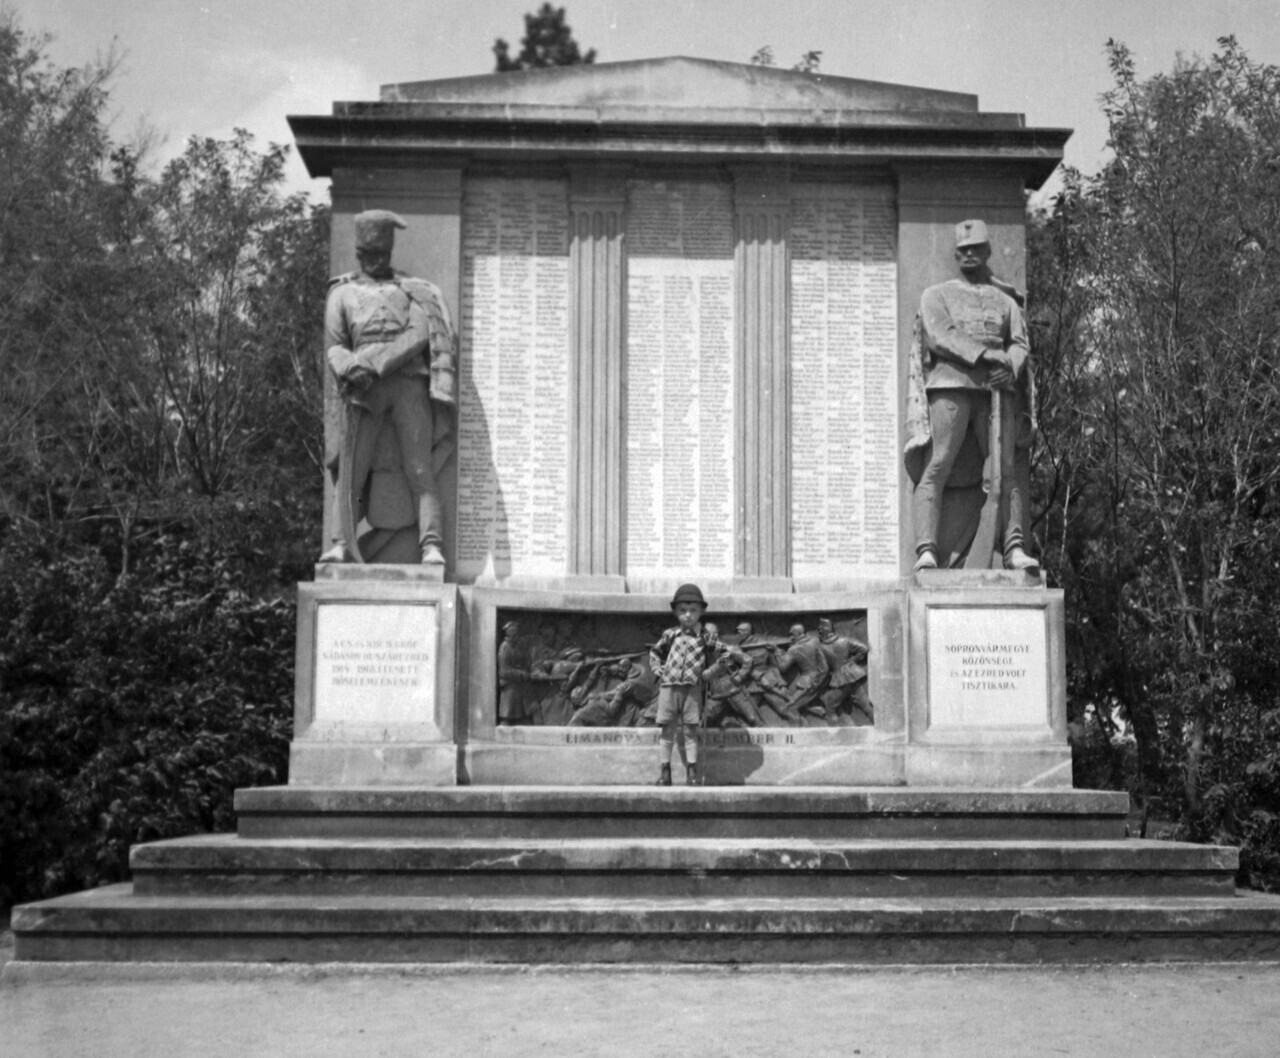 Royal and Emperor hussar monument